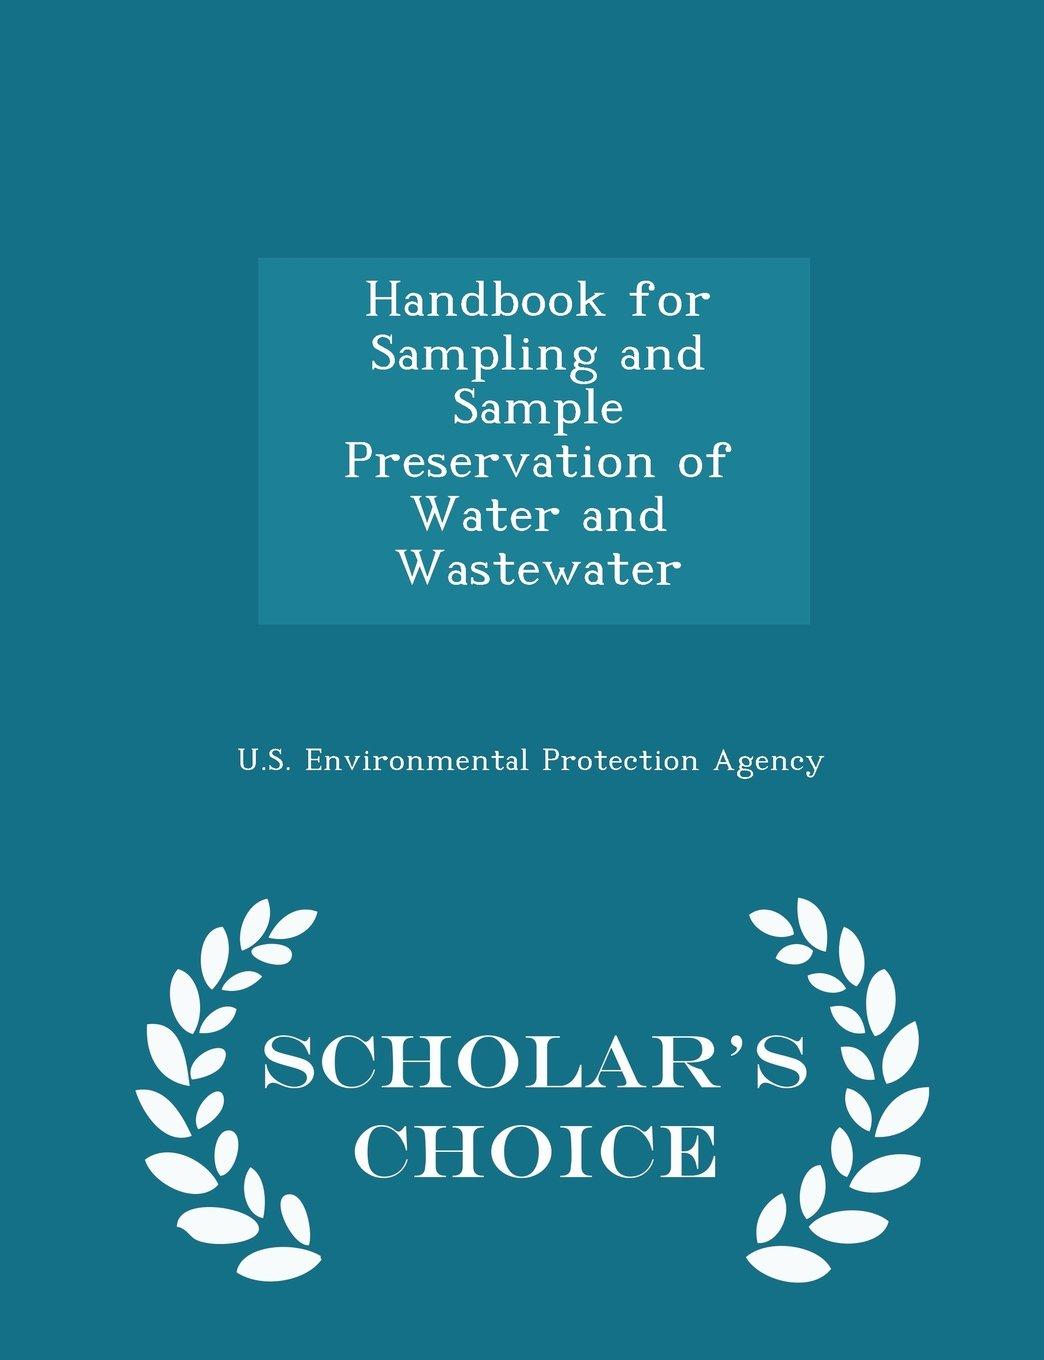 Download Handbook for Sampling and Sample Preservation of Water and Wastewater - Scholar's Choice Edition PDF